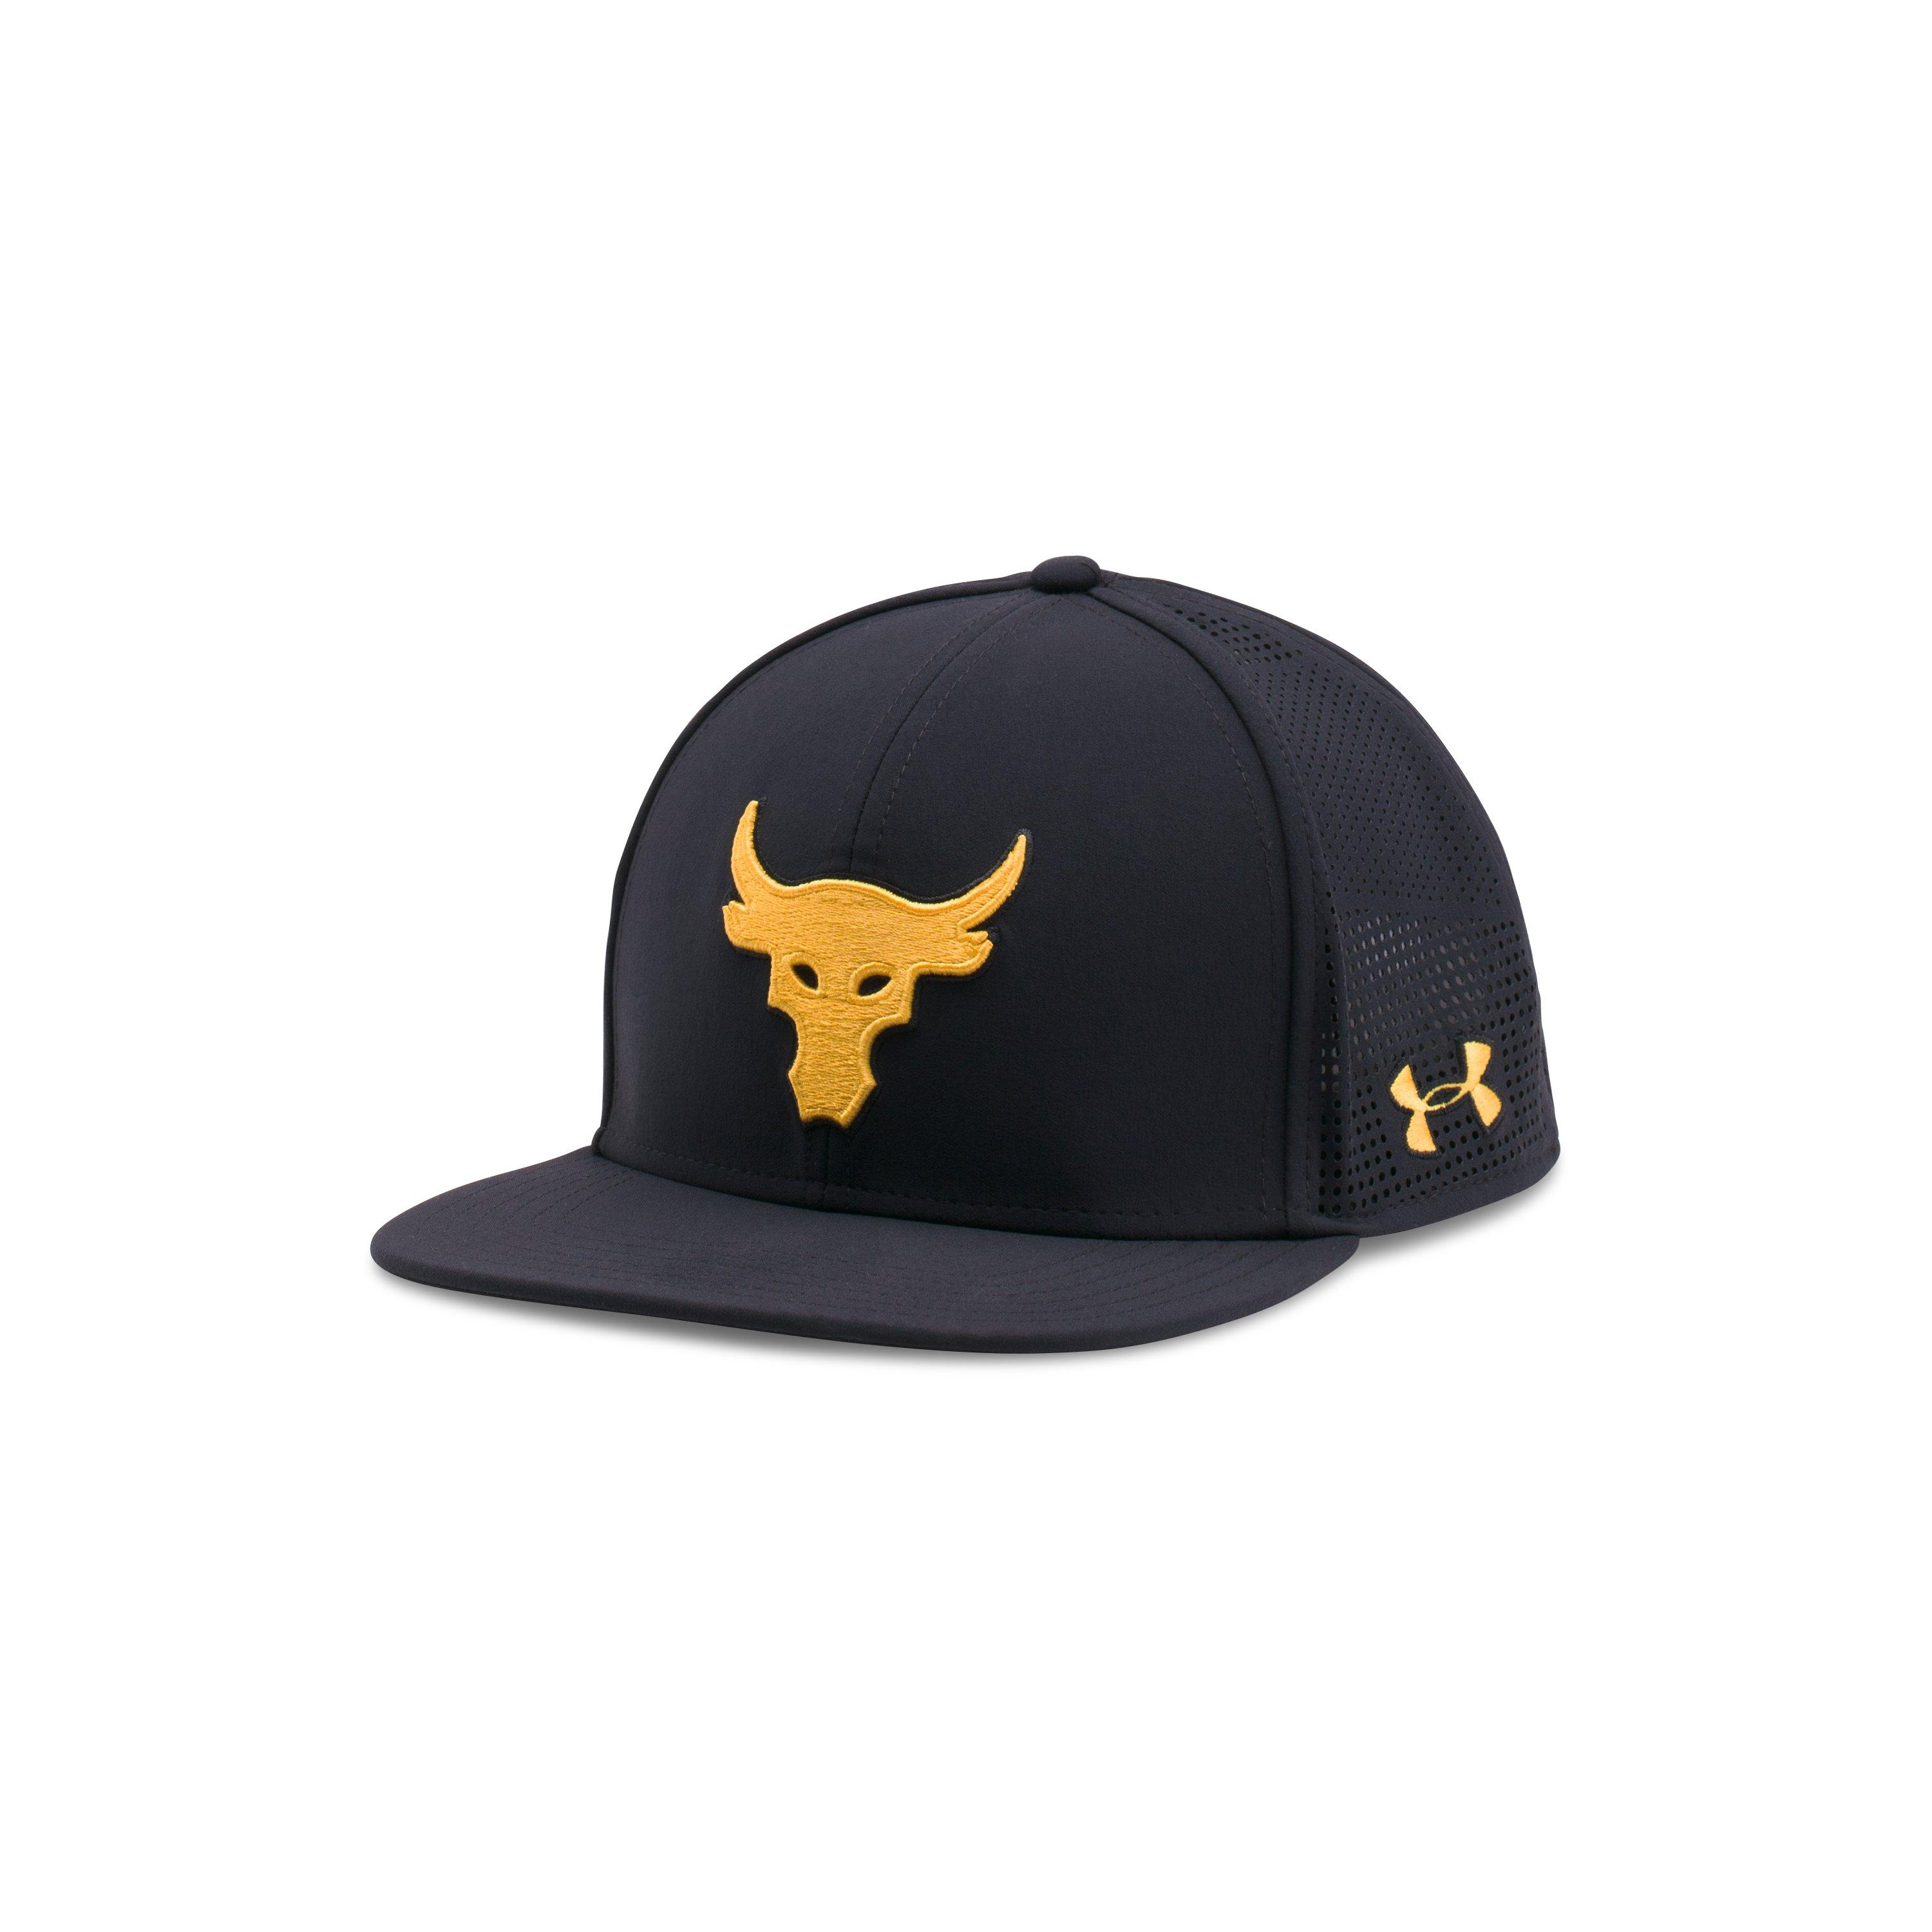 quality design 2f364 9c33d Under Armour Ua X Project Rock Supervent Snapback Cap in Black for ...